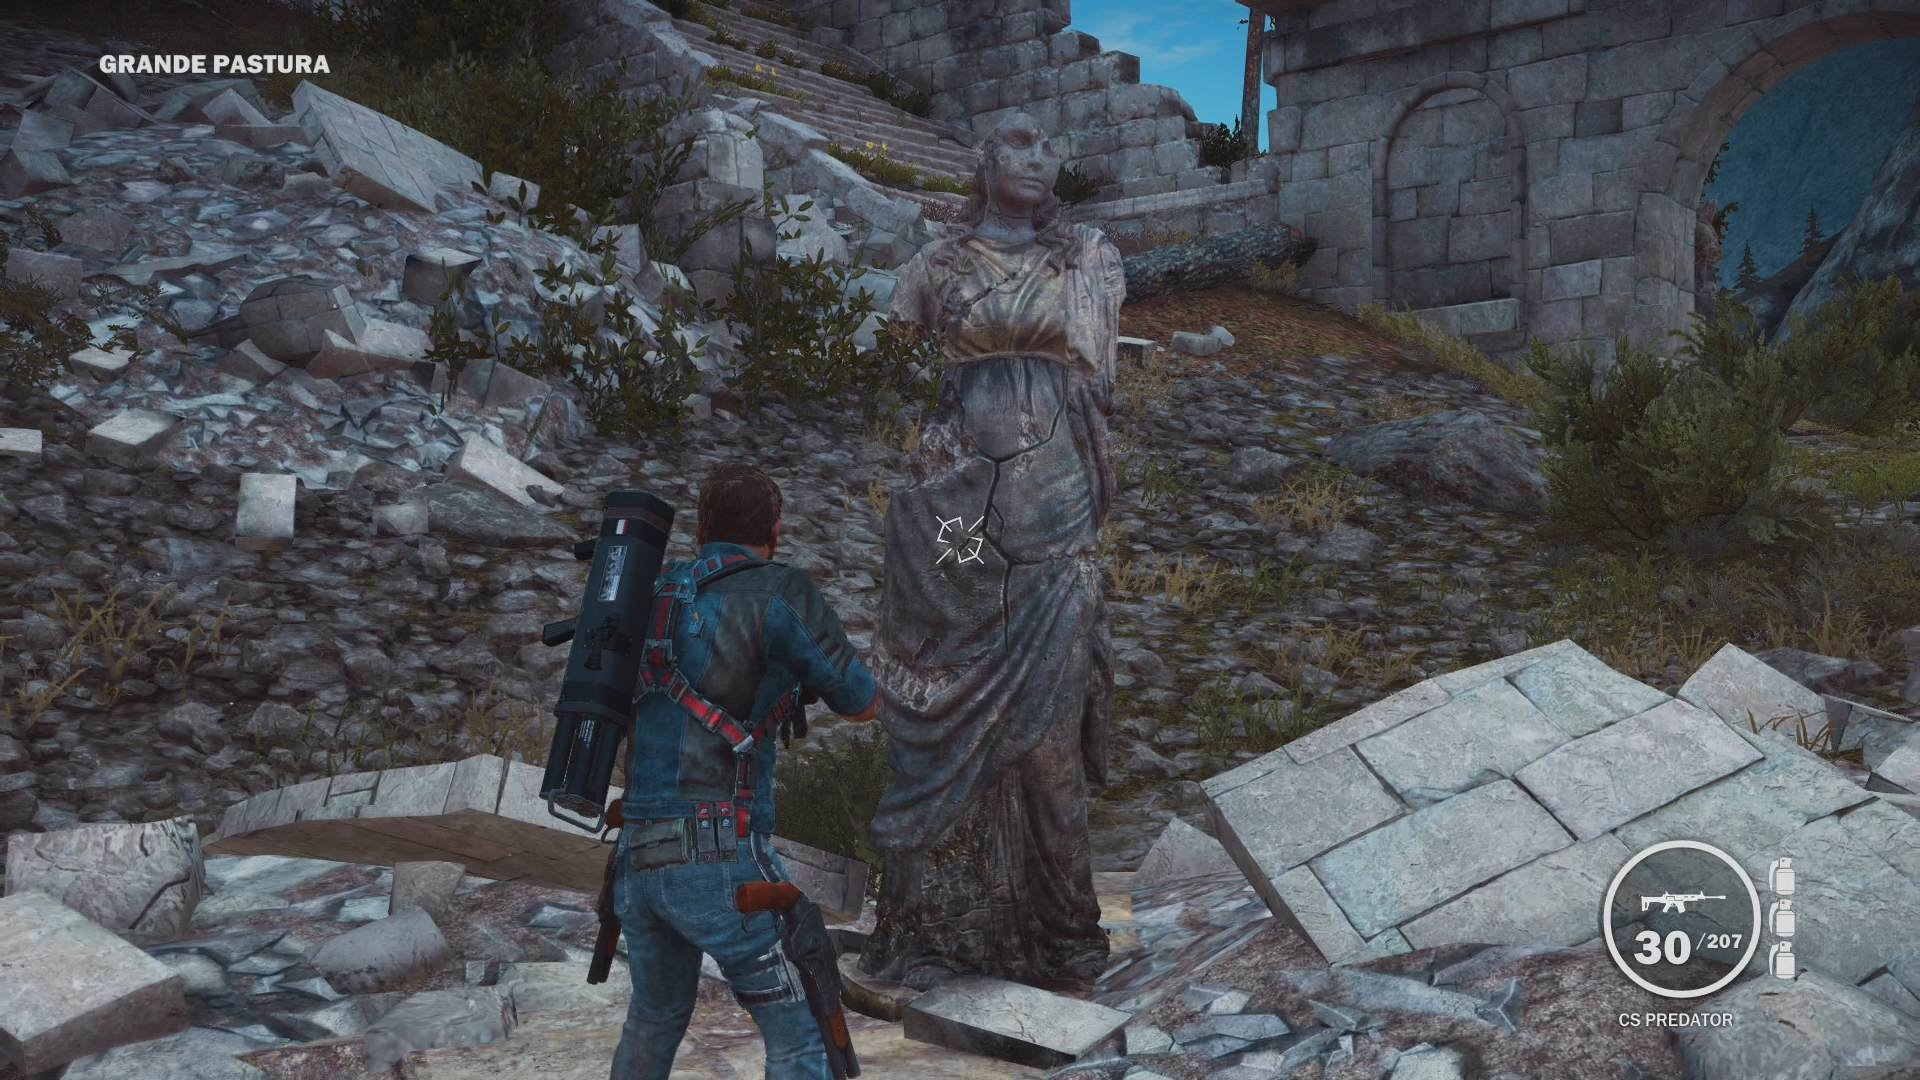 Just Cause 3 Dr. Who Weeping Angels Easter Egg Eleven Great Videogame Easter Eggs From 2014/15